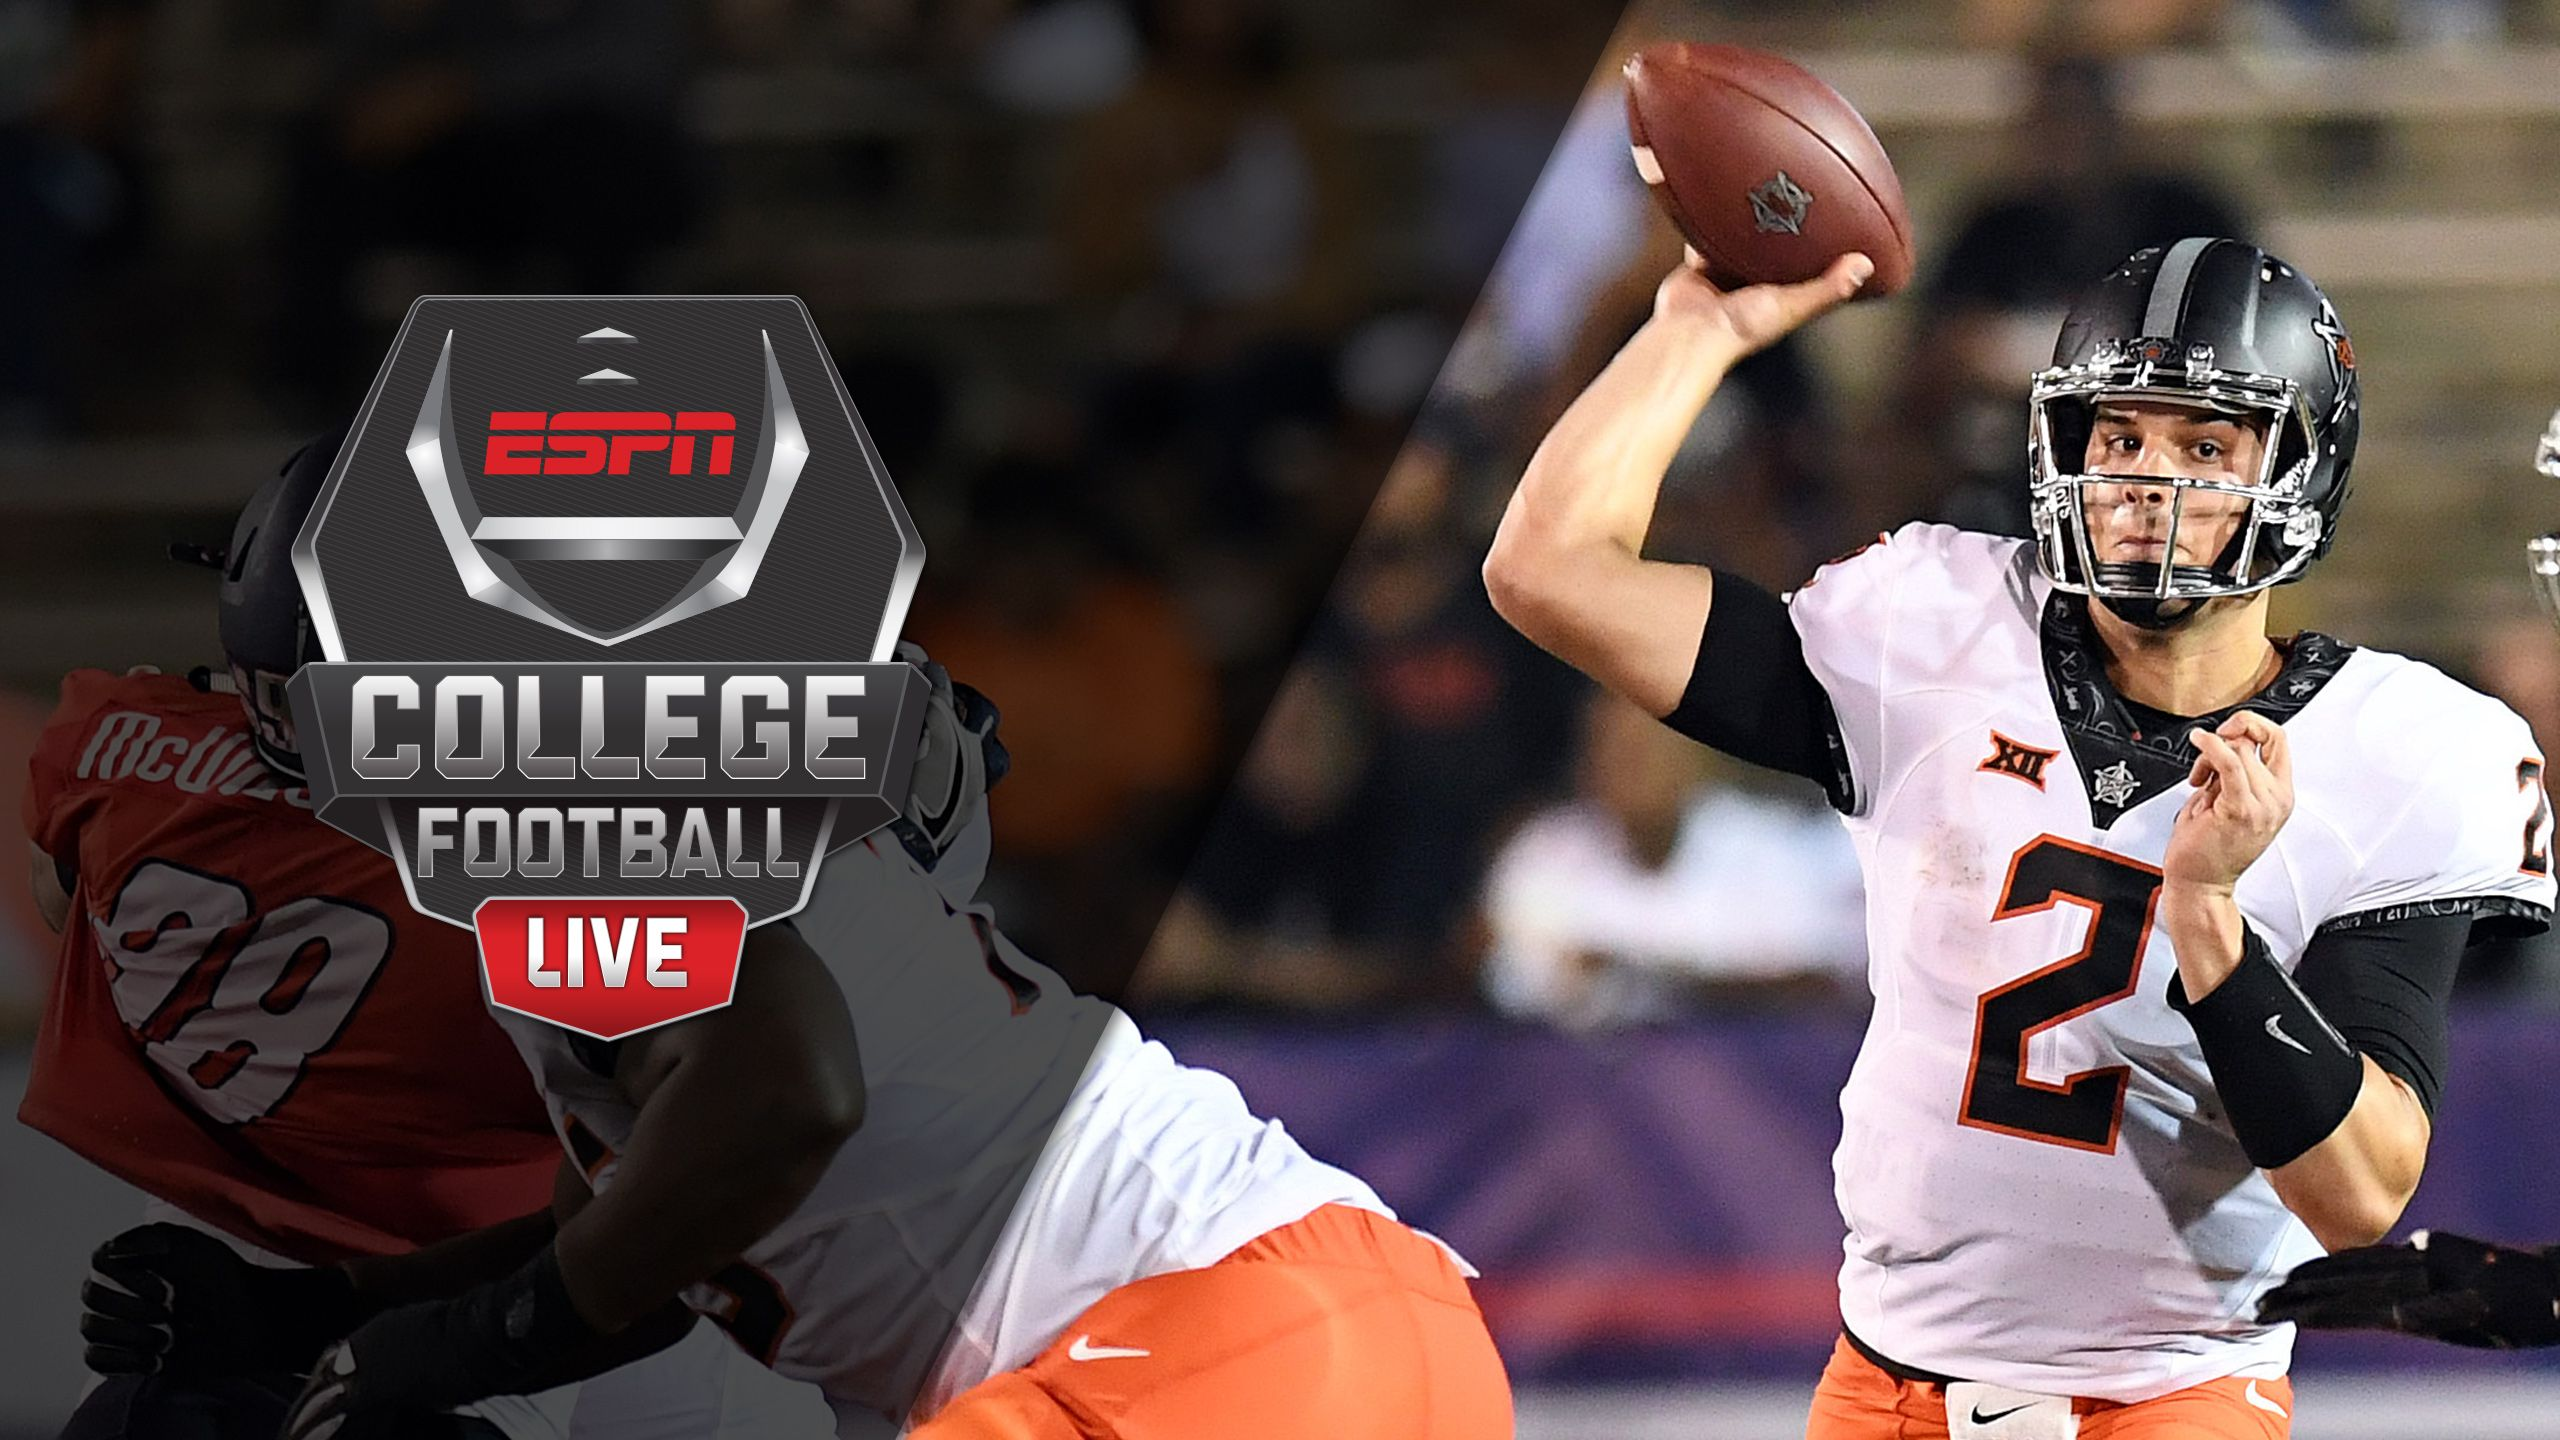 College Football Live Presented by Wrangler